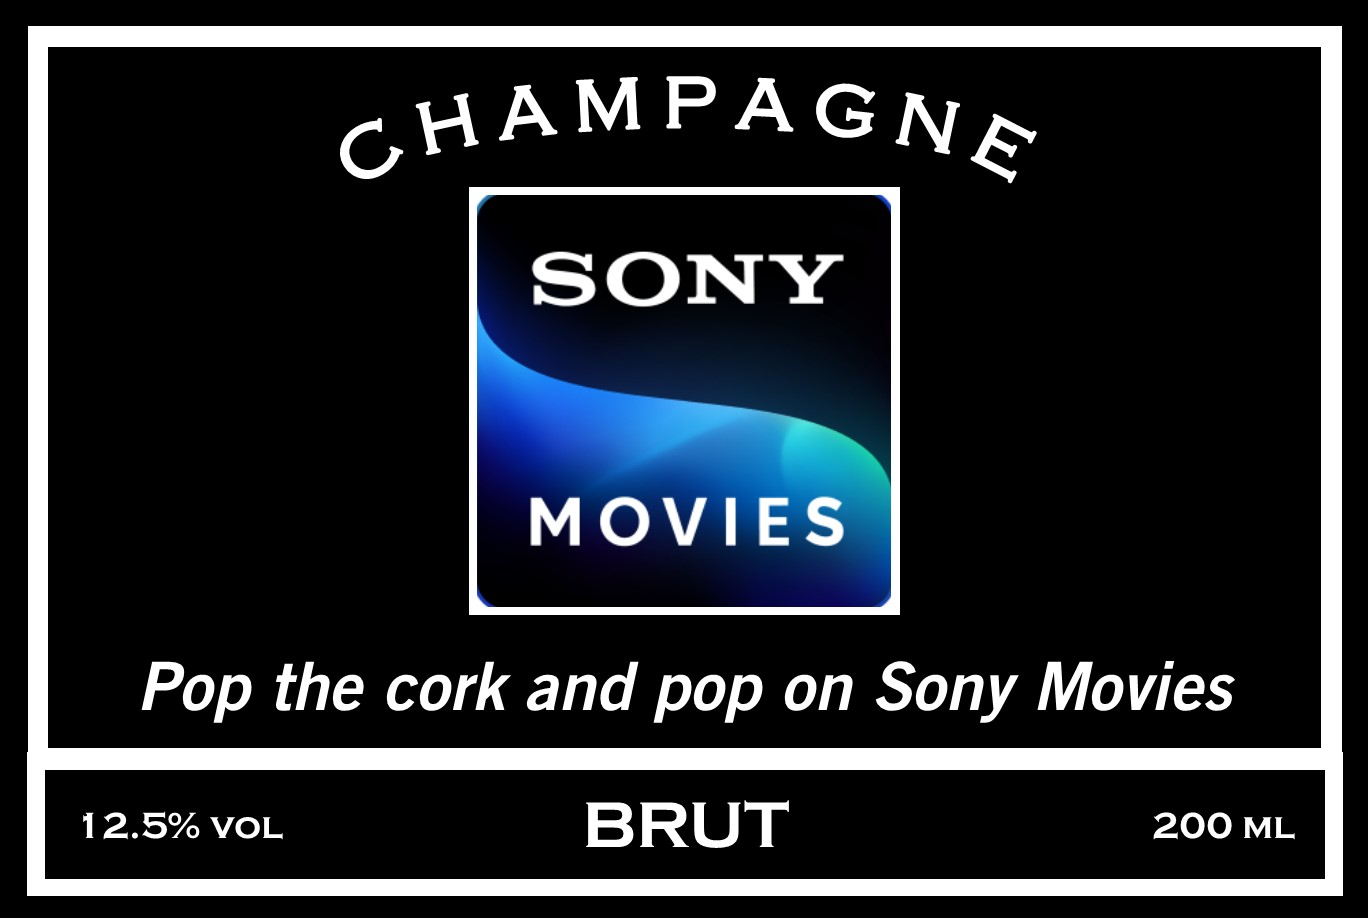 Sony movies Mini Champagne Label